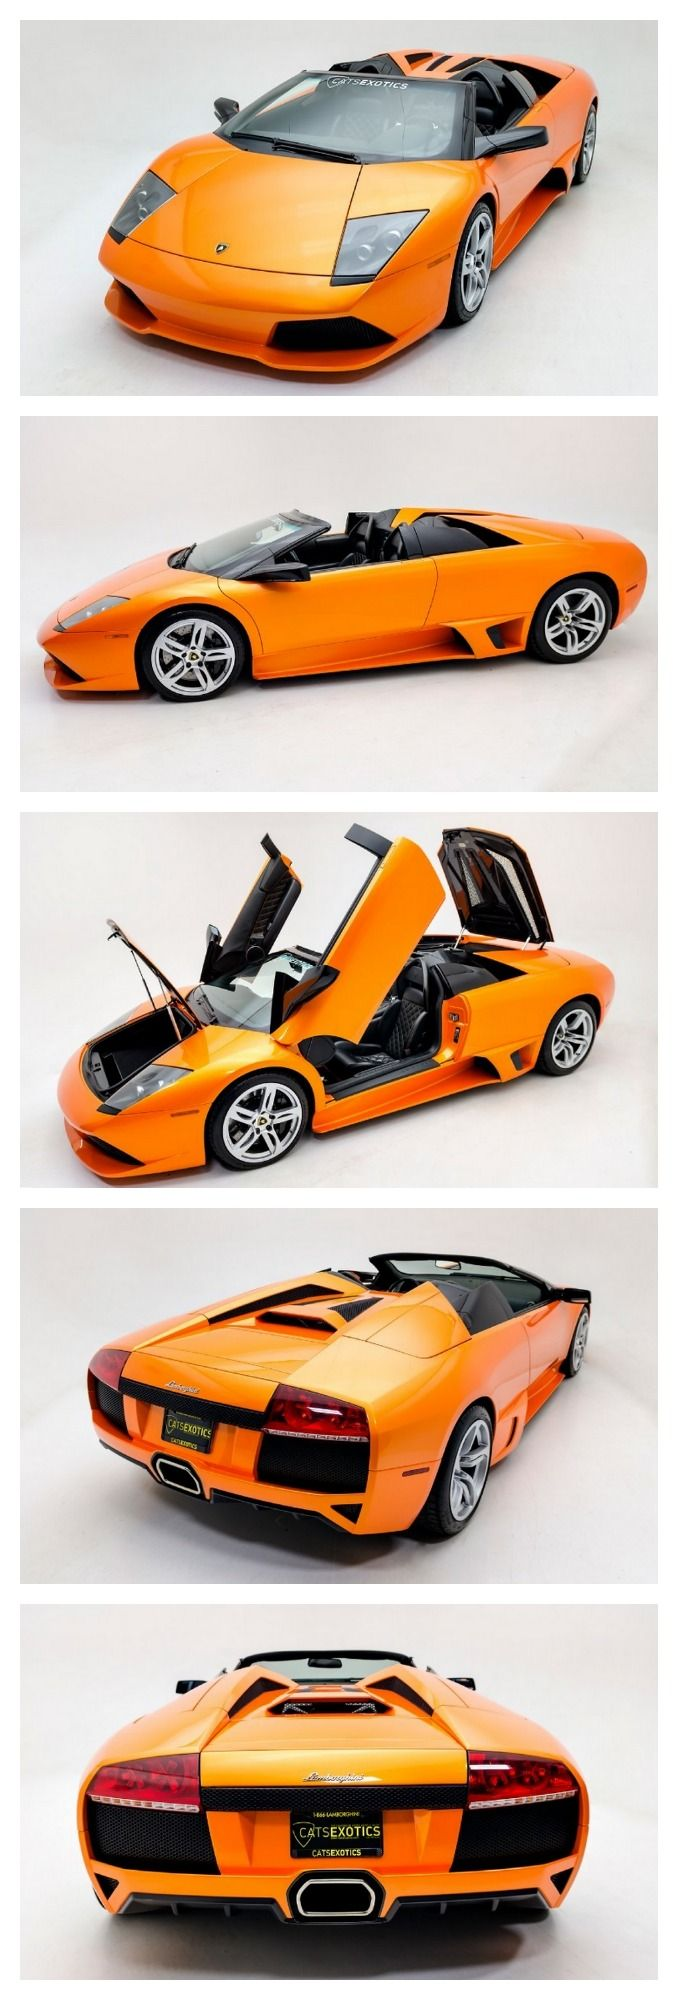 Wow! Check out this exquisite Lamborghini Murcielago convertible #TurboTuesday